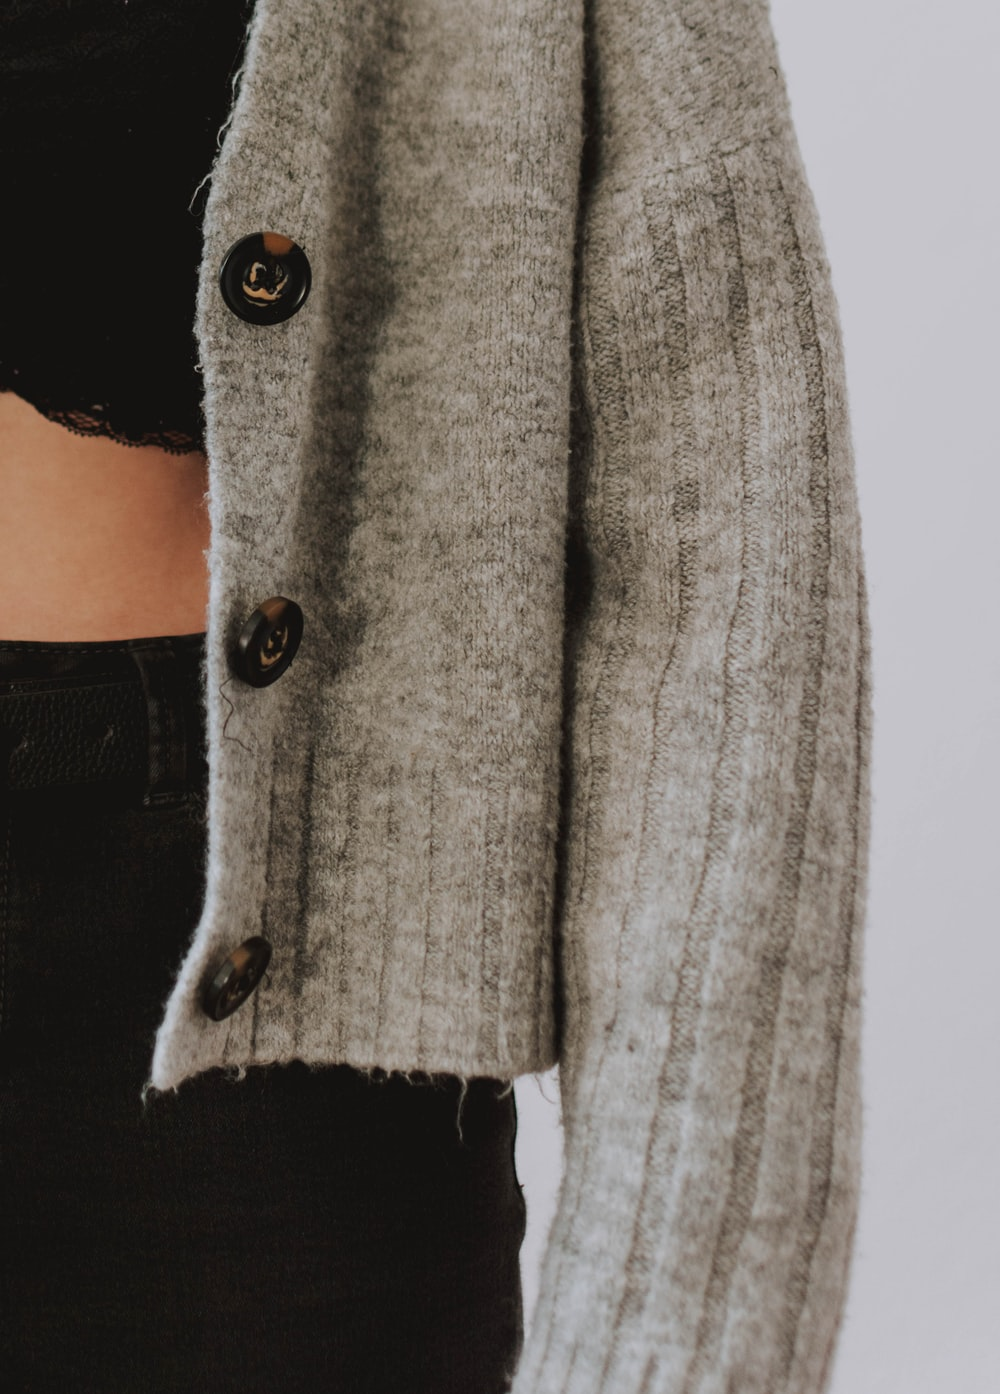 person wearing gray knit button-up sweater